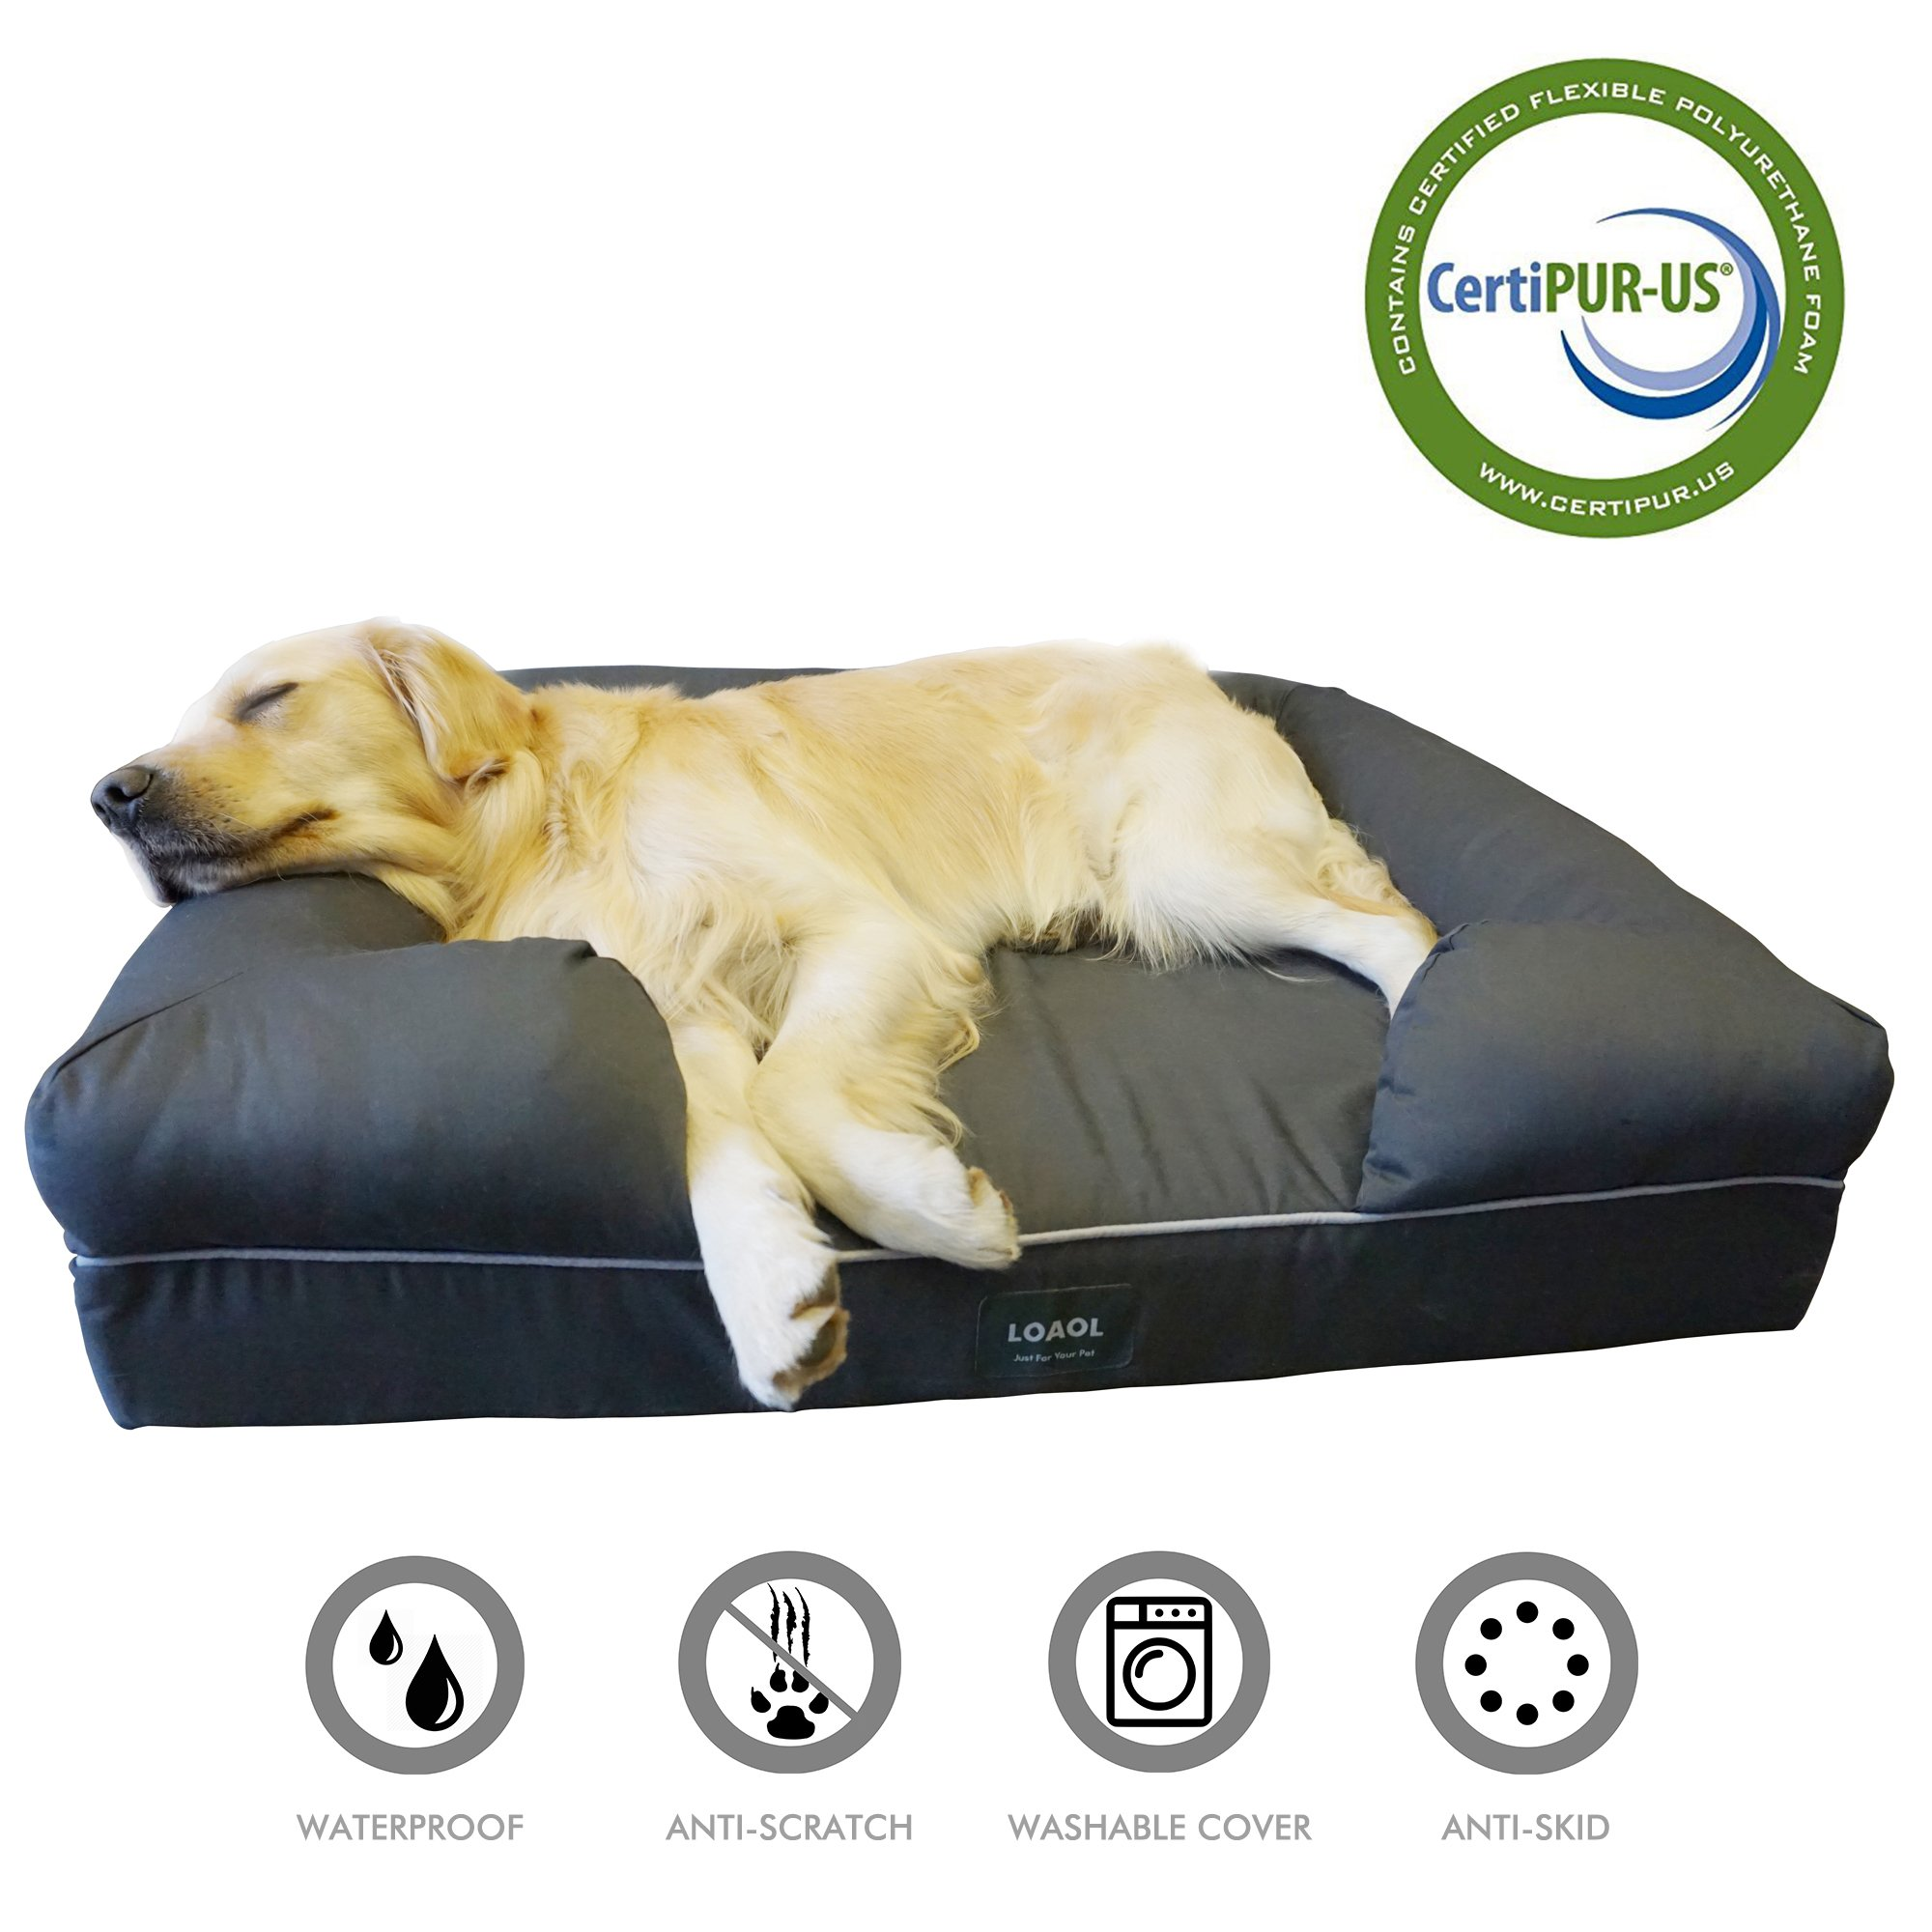 LOAOL Memory Foam Dog Bed Durable Waterproof Pet Sofa Couch with Bolster Orthopedic Cat Lounger Removable Cover (L, Woven Gray) by LOAOL